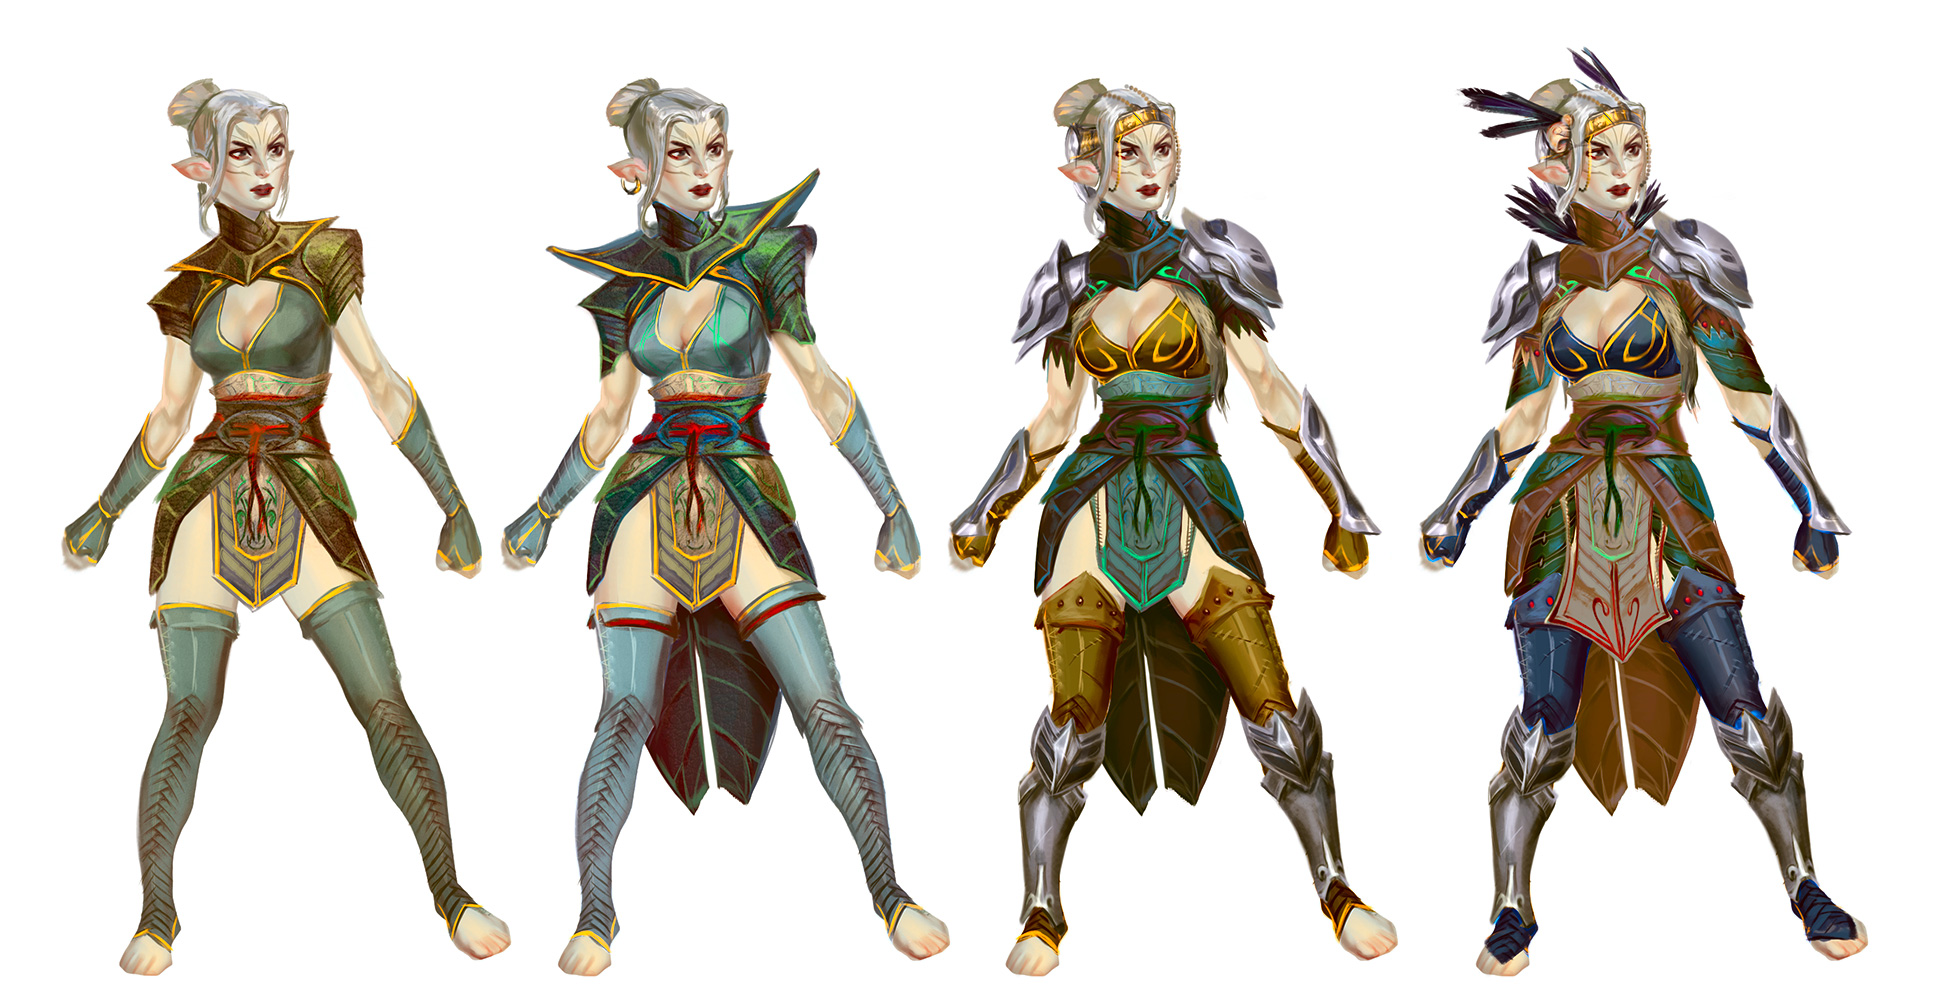 Heroes Of Dragon Age Elf Keeper Concept By Anotherdamian On Deviantart You have to use the book to get the boots. heroes of dragon age elf keeper concept